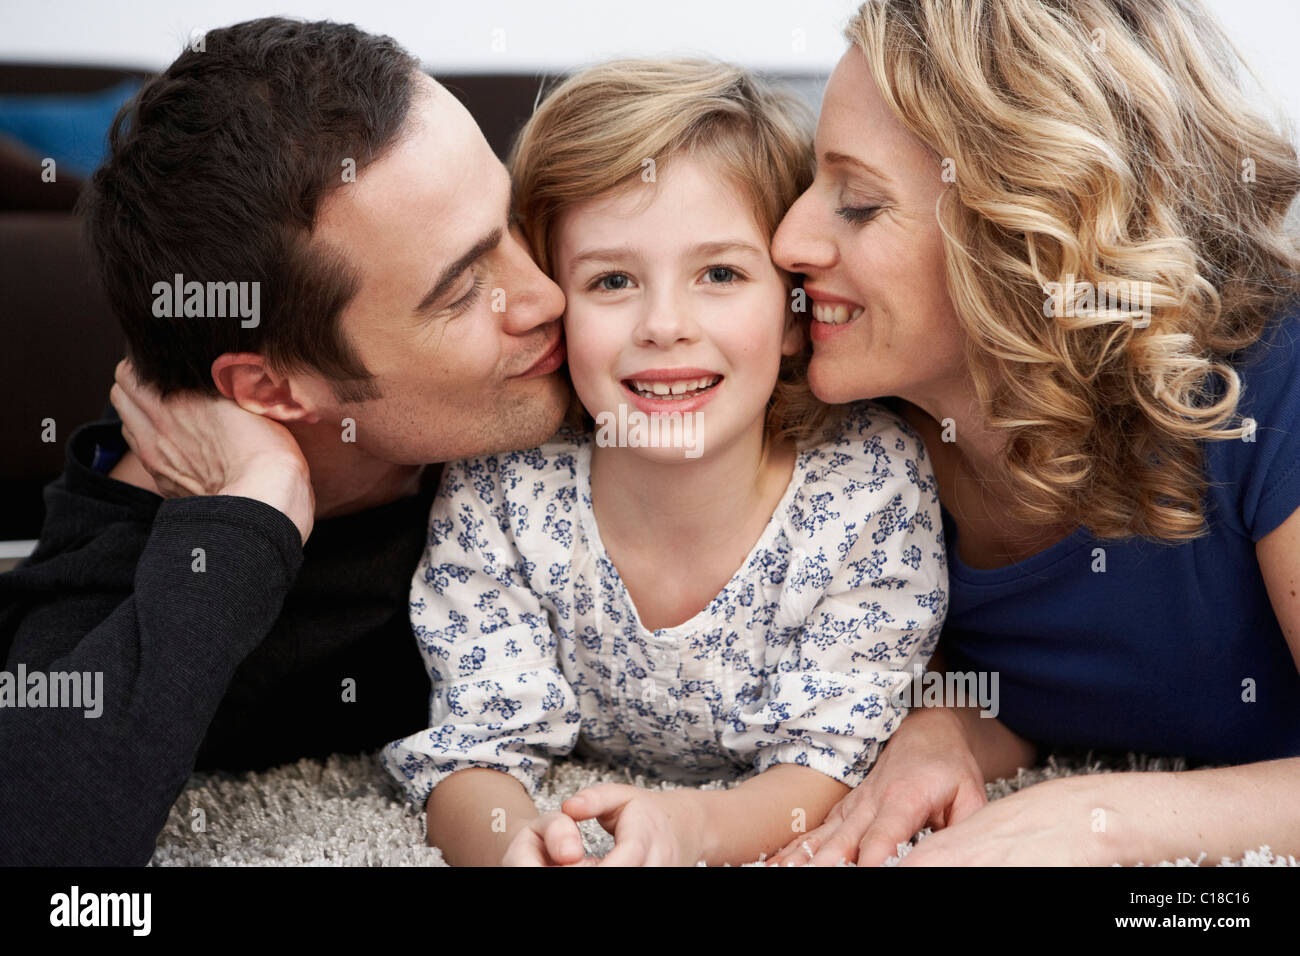 Parents kissing daughter on cheeks - Stock Image